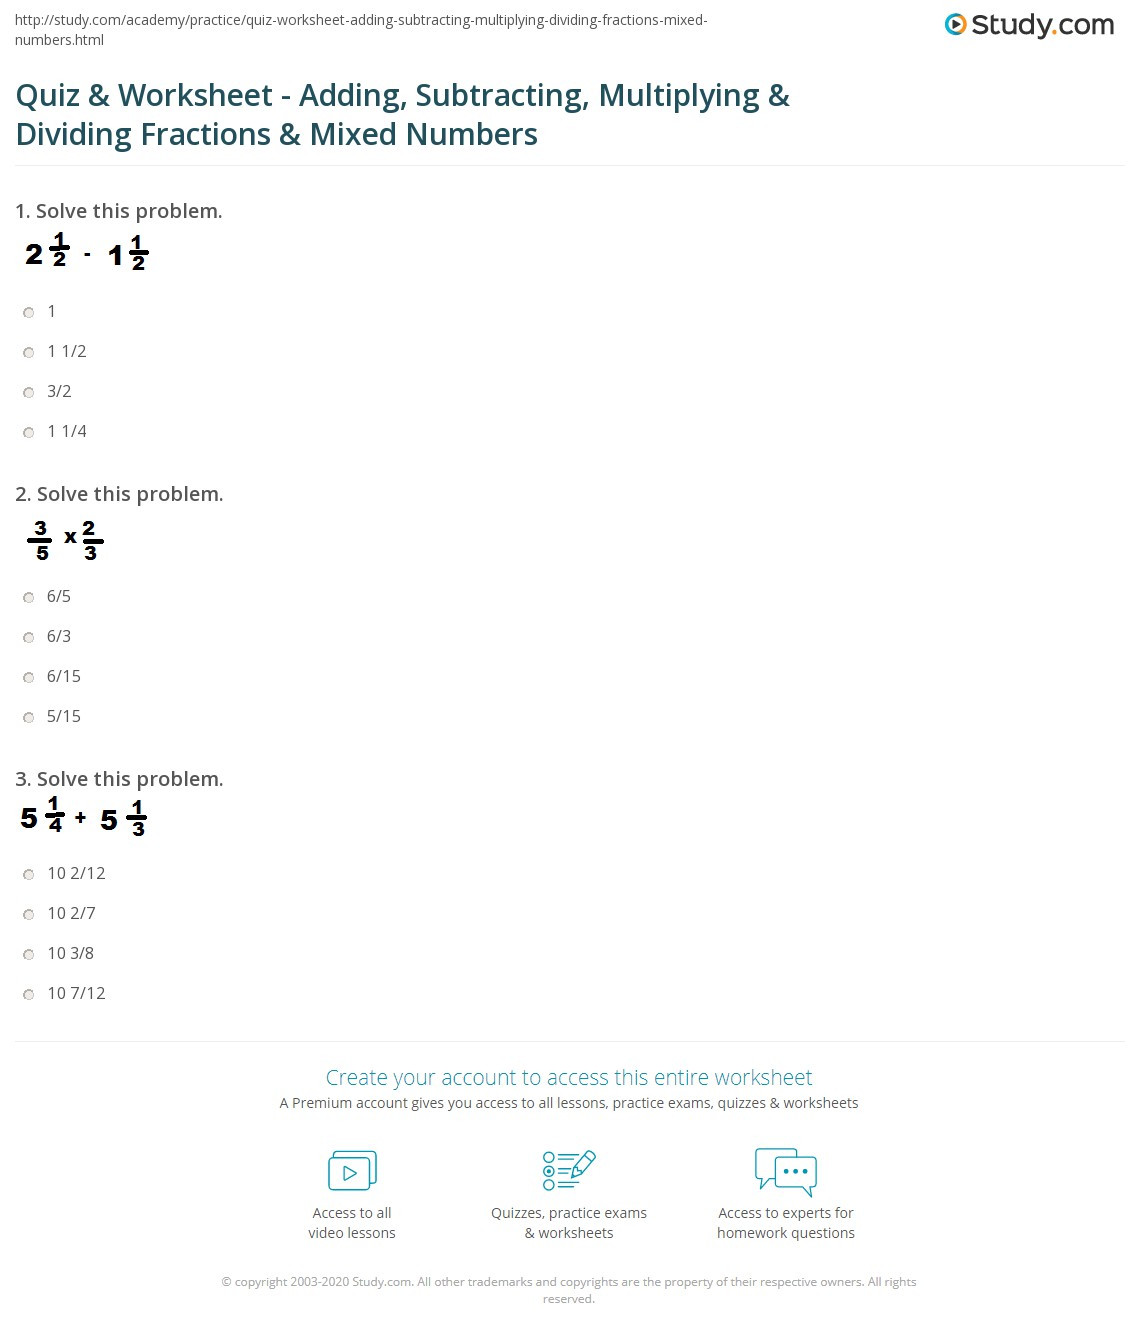 Dividing and Multiplying Fractions Worksheet Quiz & Worksheet Adding Subtracting Multiplying